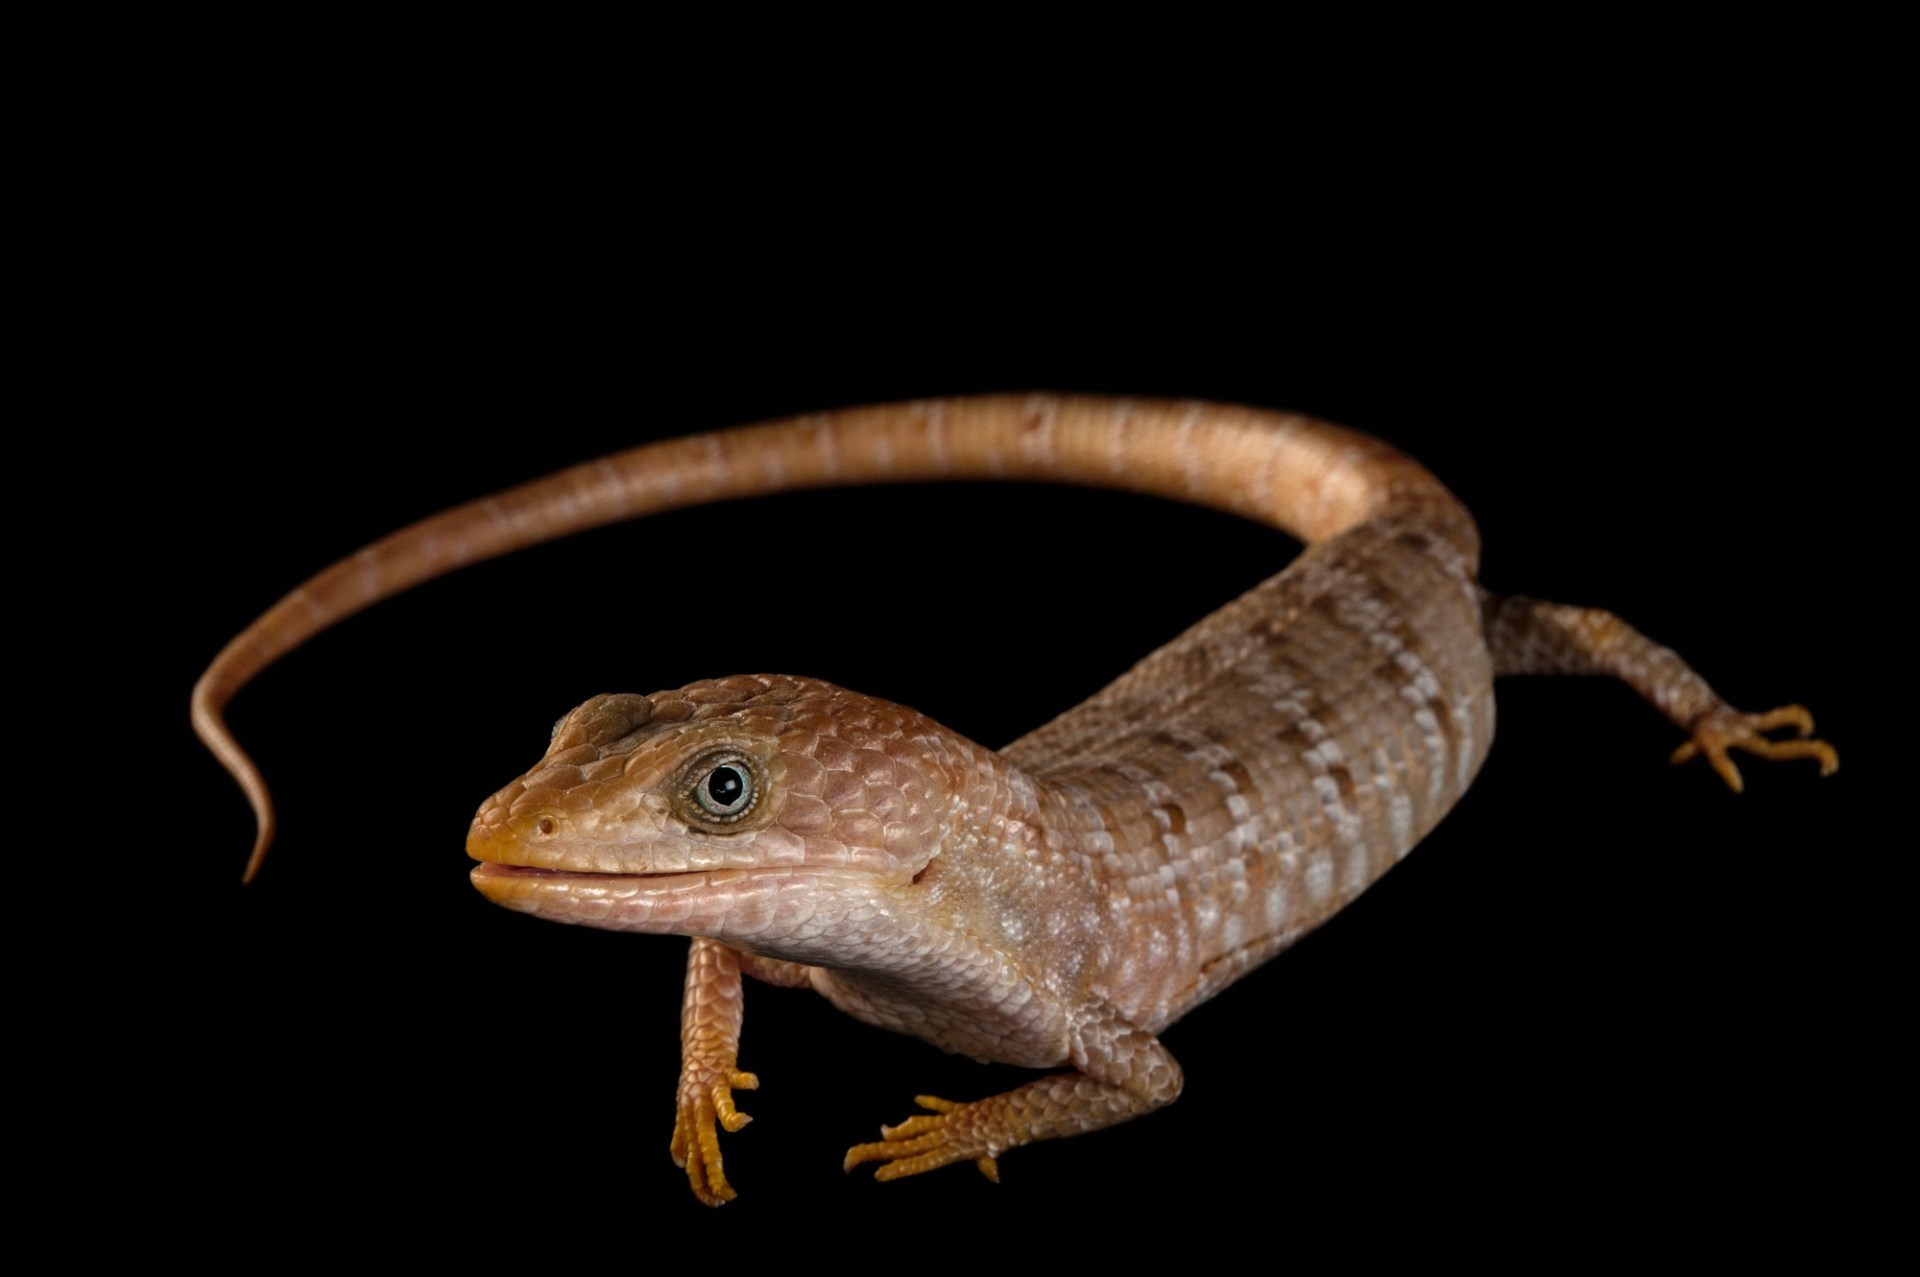 A Texas alligator lizard (Gerrhonotus infernalis) at the Gladys Porter Zoo in Brownsville, Texas.